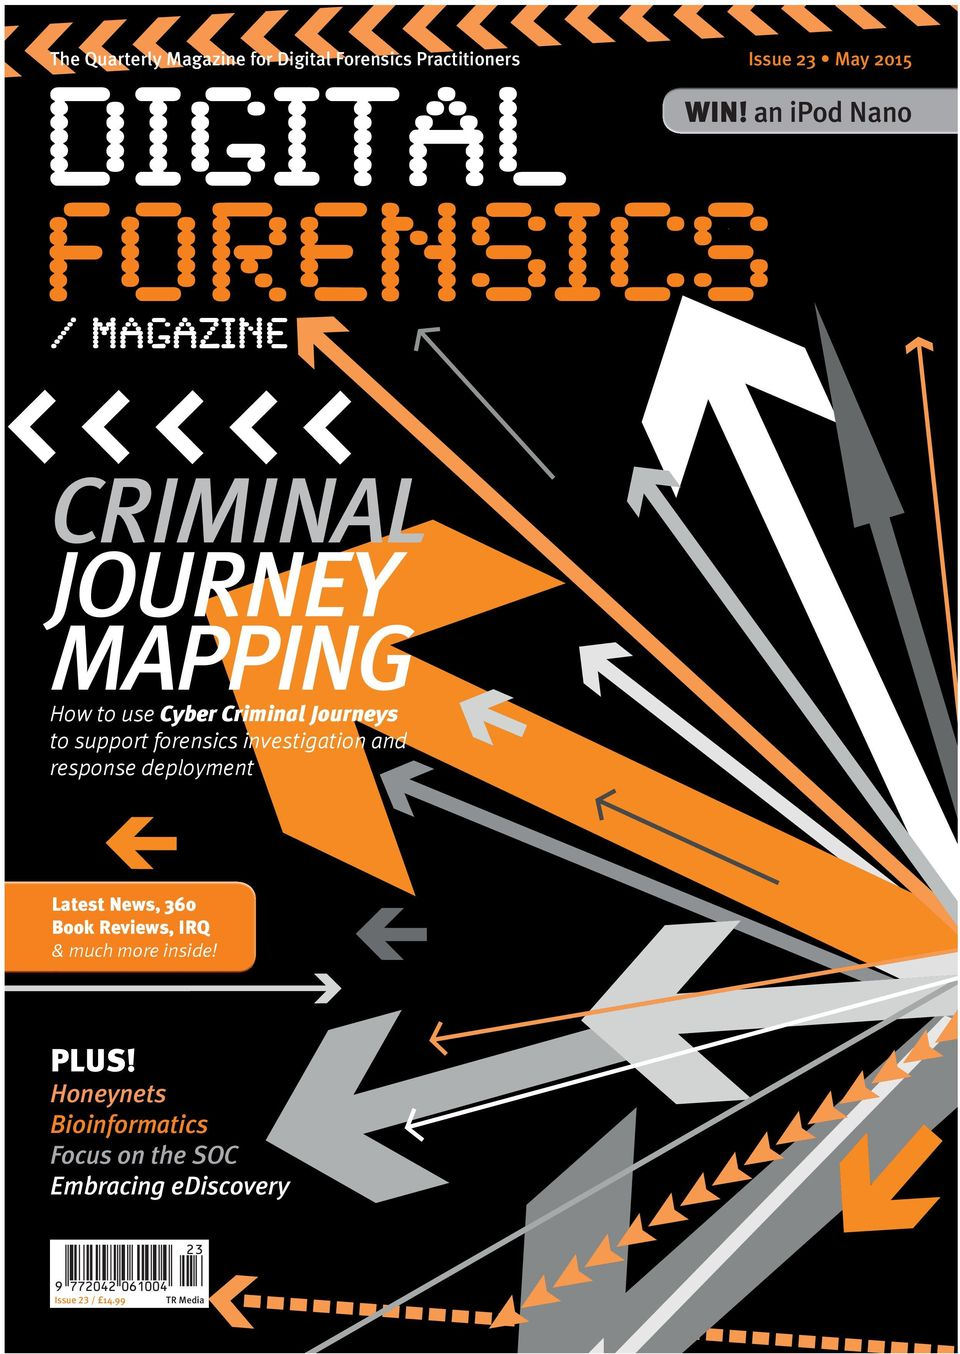 an ipod Nano CRIMINAL JOURNEY MAPPING How to use Cyber Criminal Journeys to support forensics